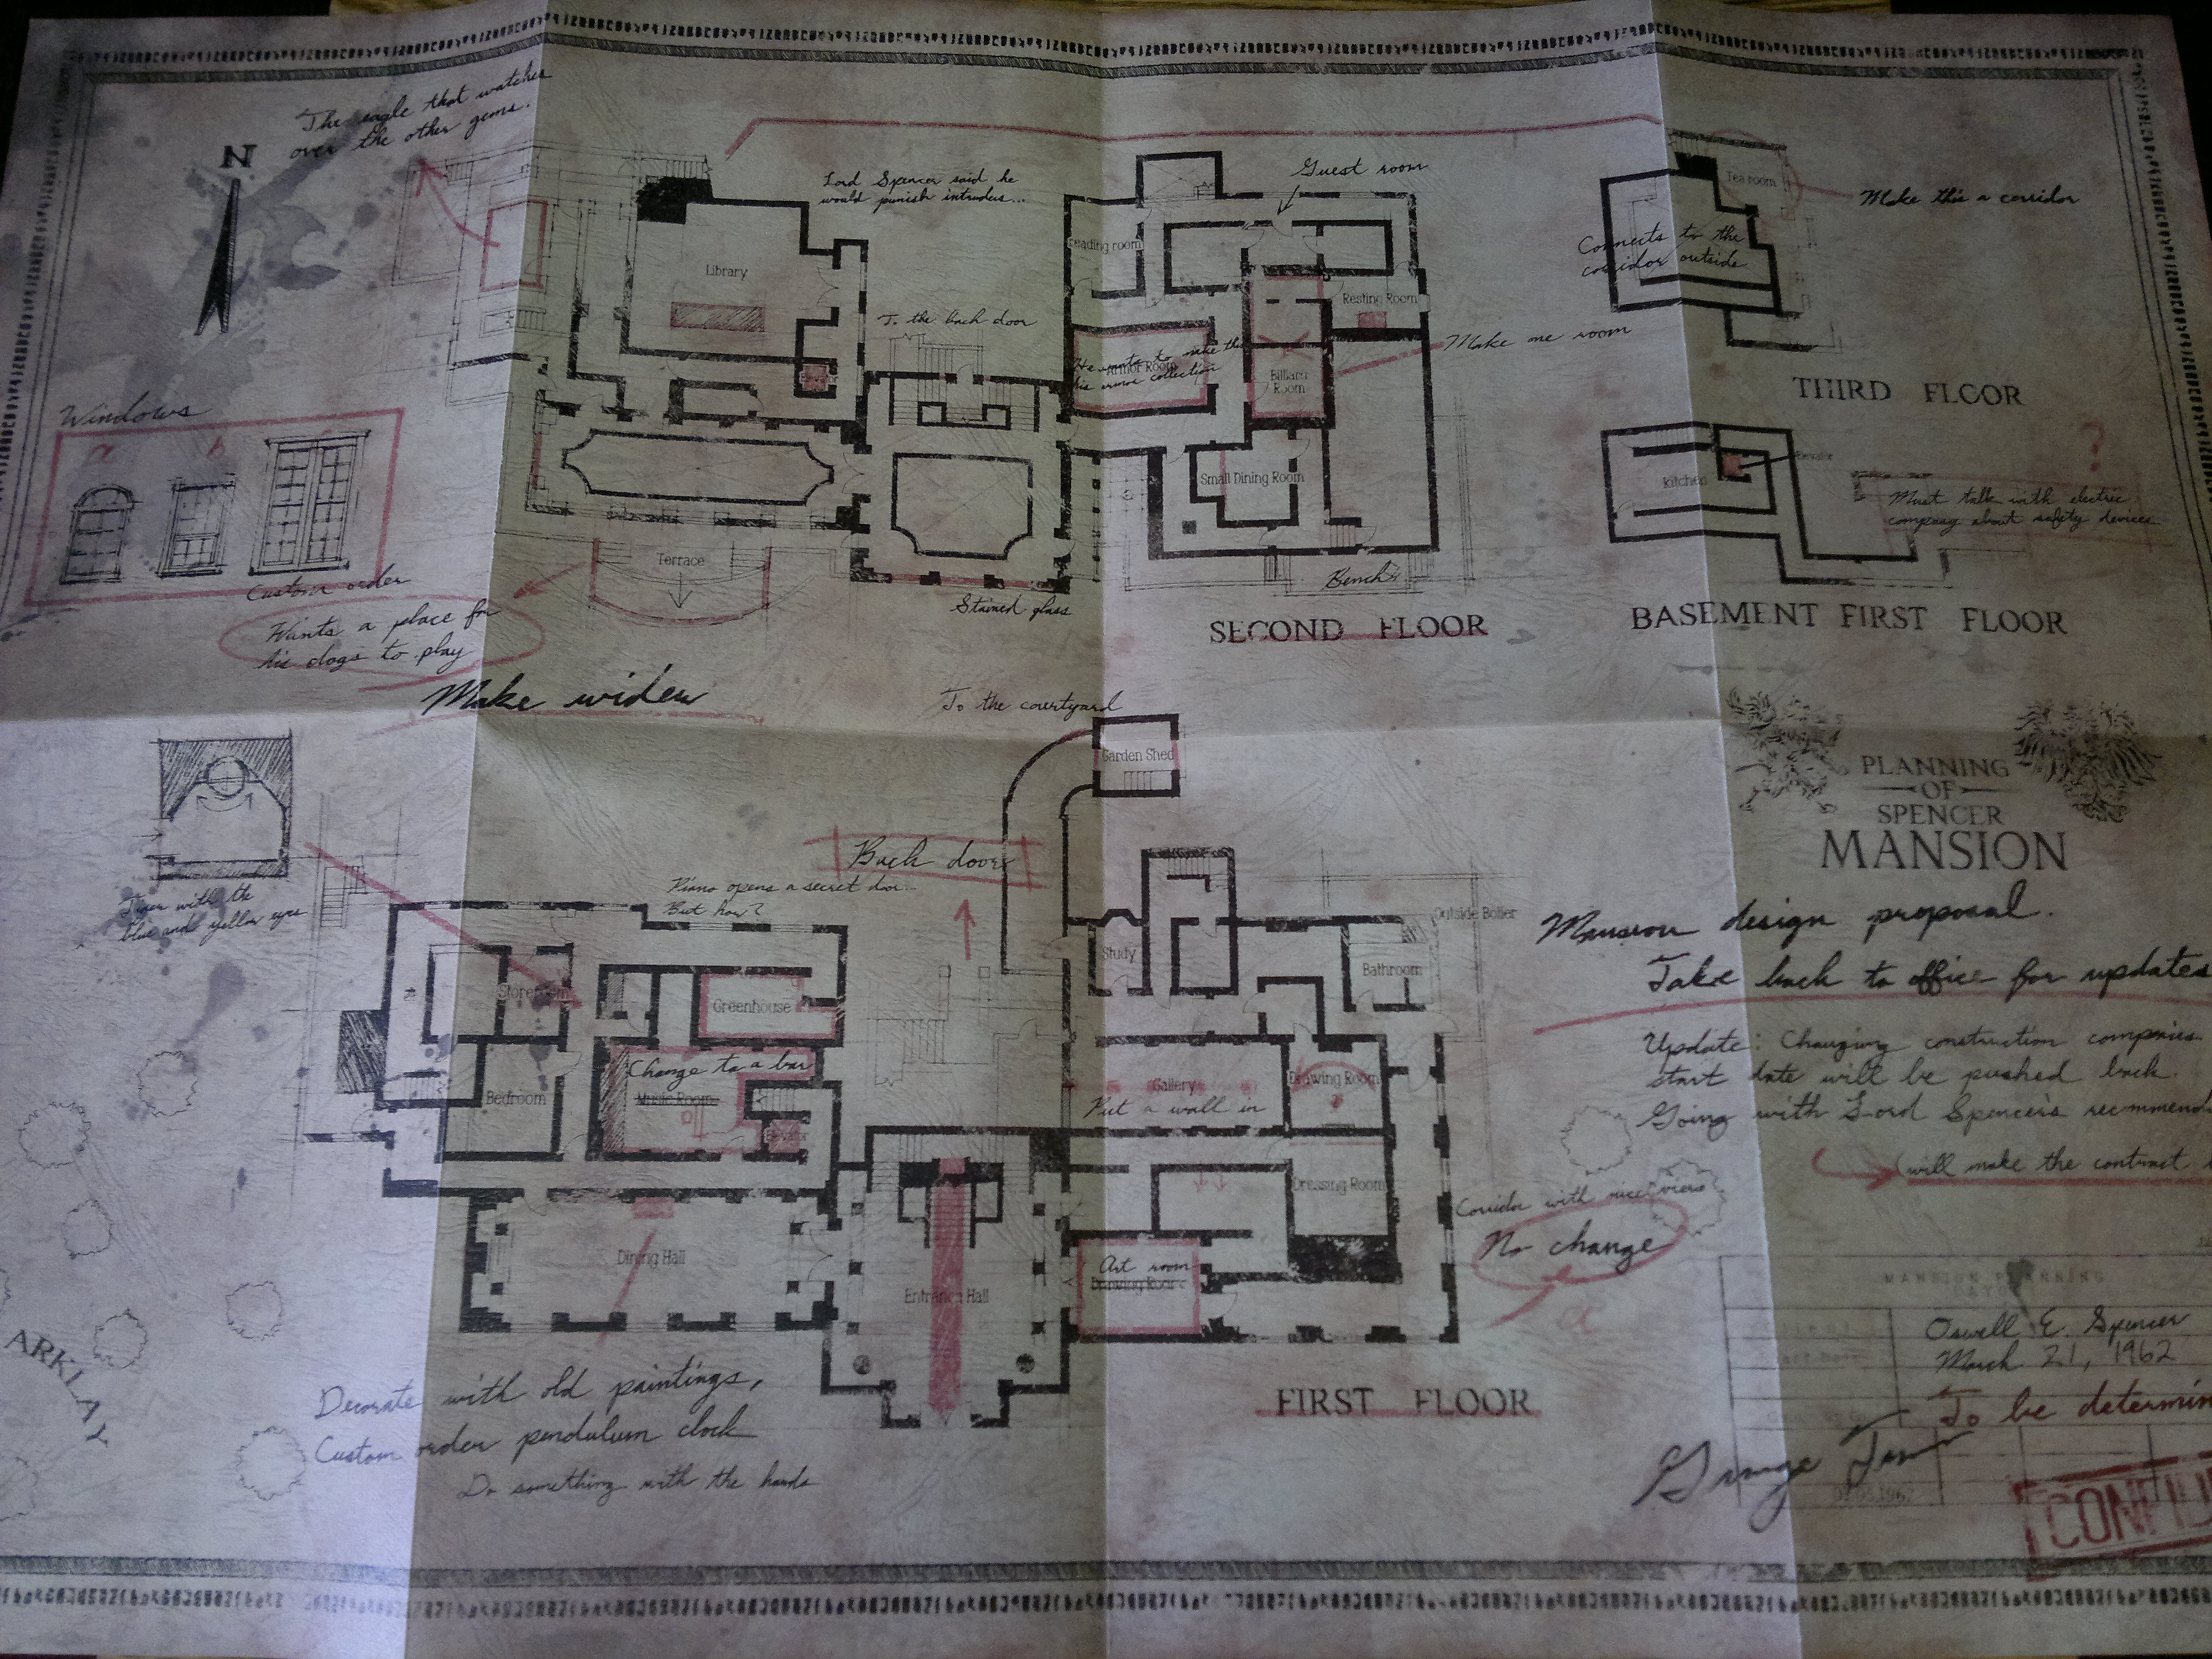 Mack Ch Fuse Box Diagram Rd List Of Schematic Circuit Lincoln Mark Viii Granite Auto Electrical Wiring